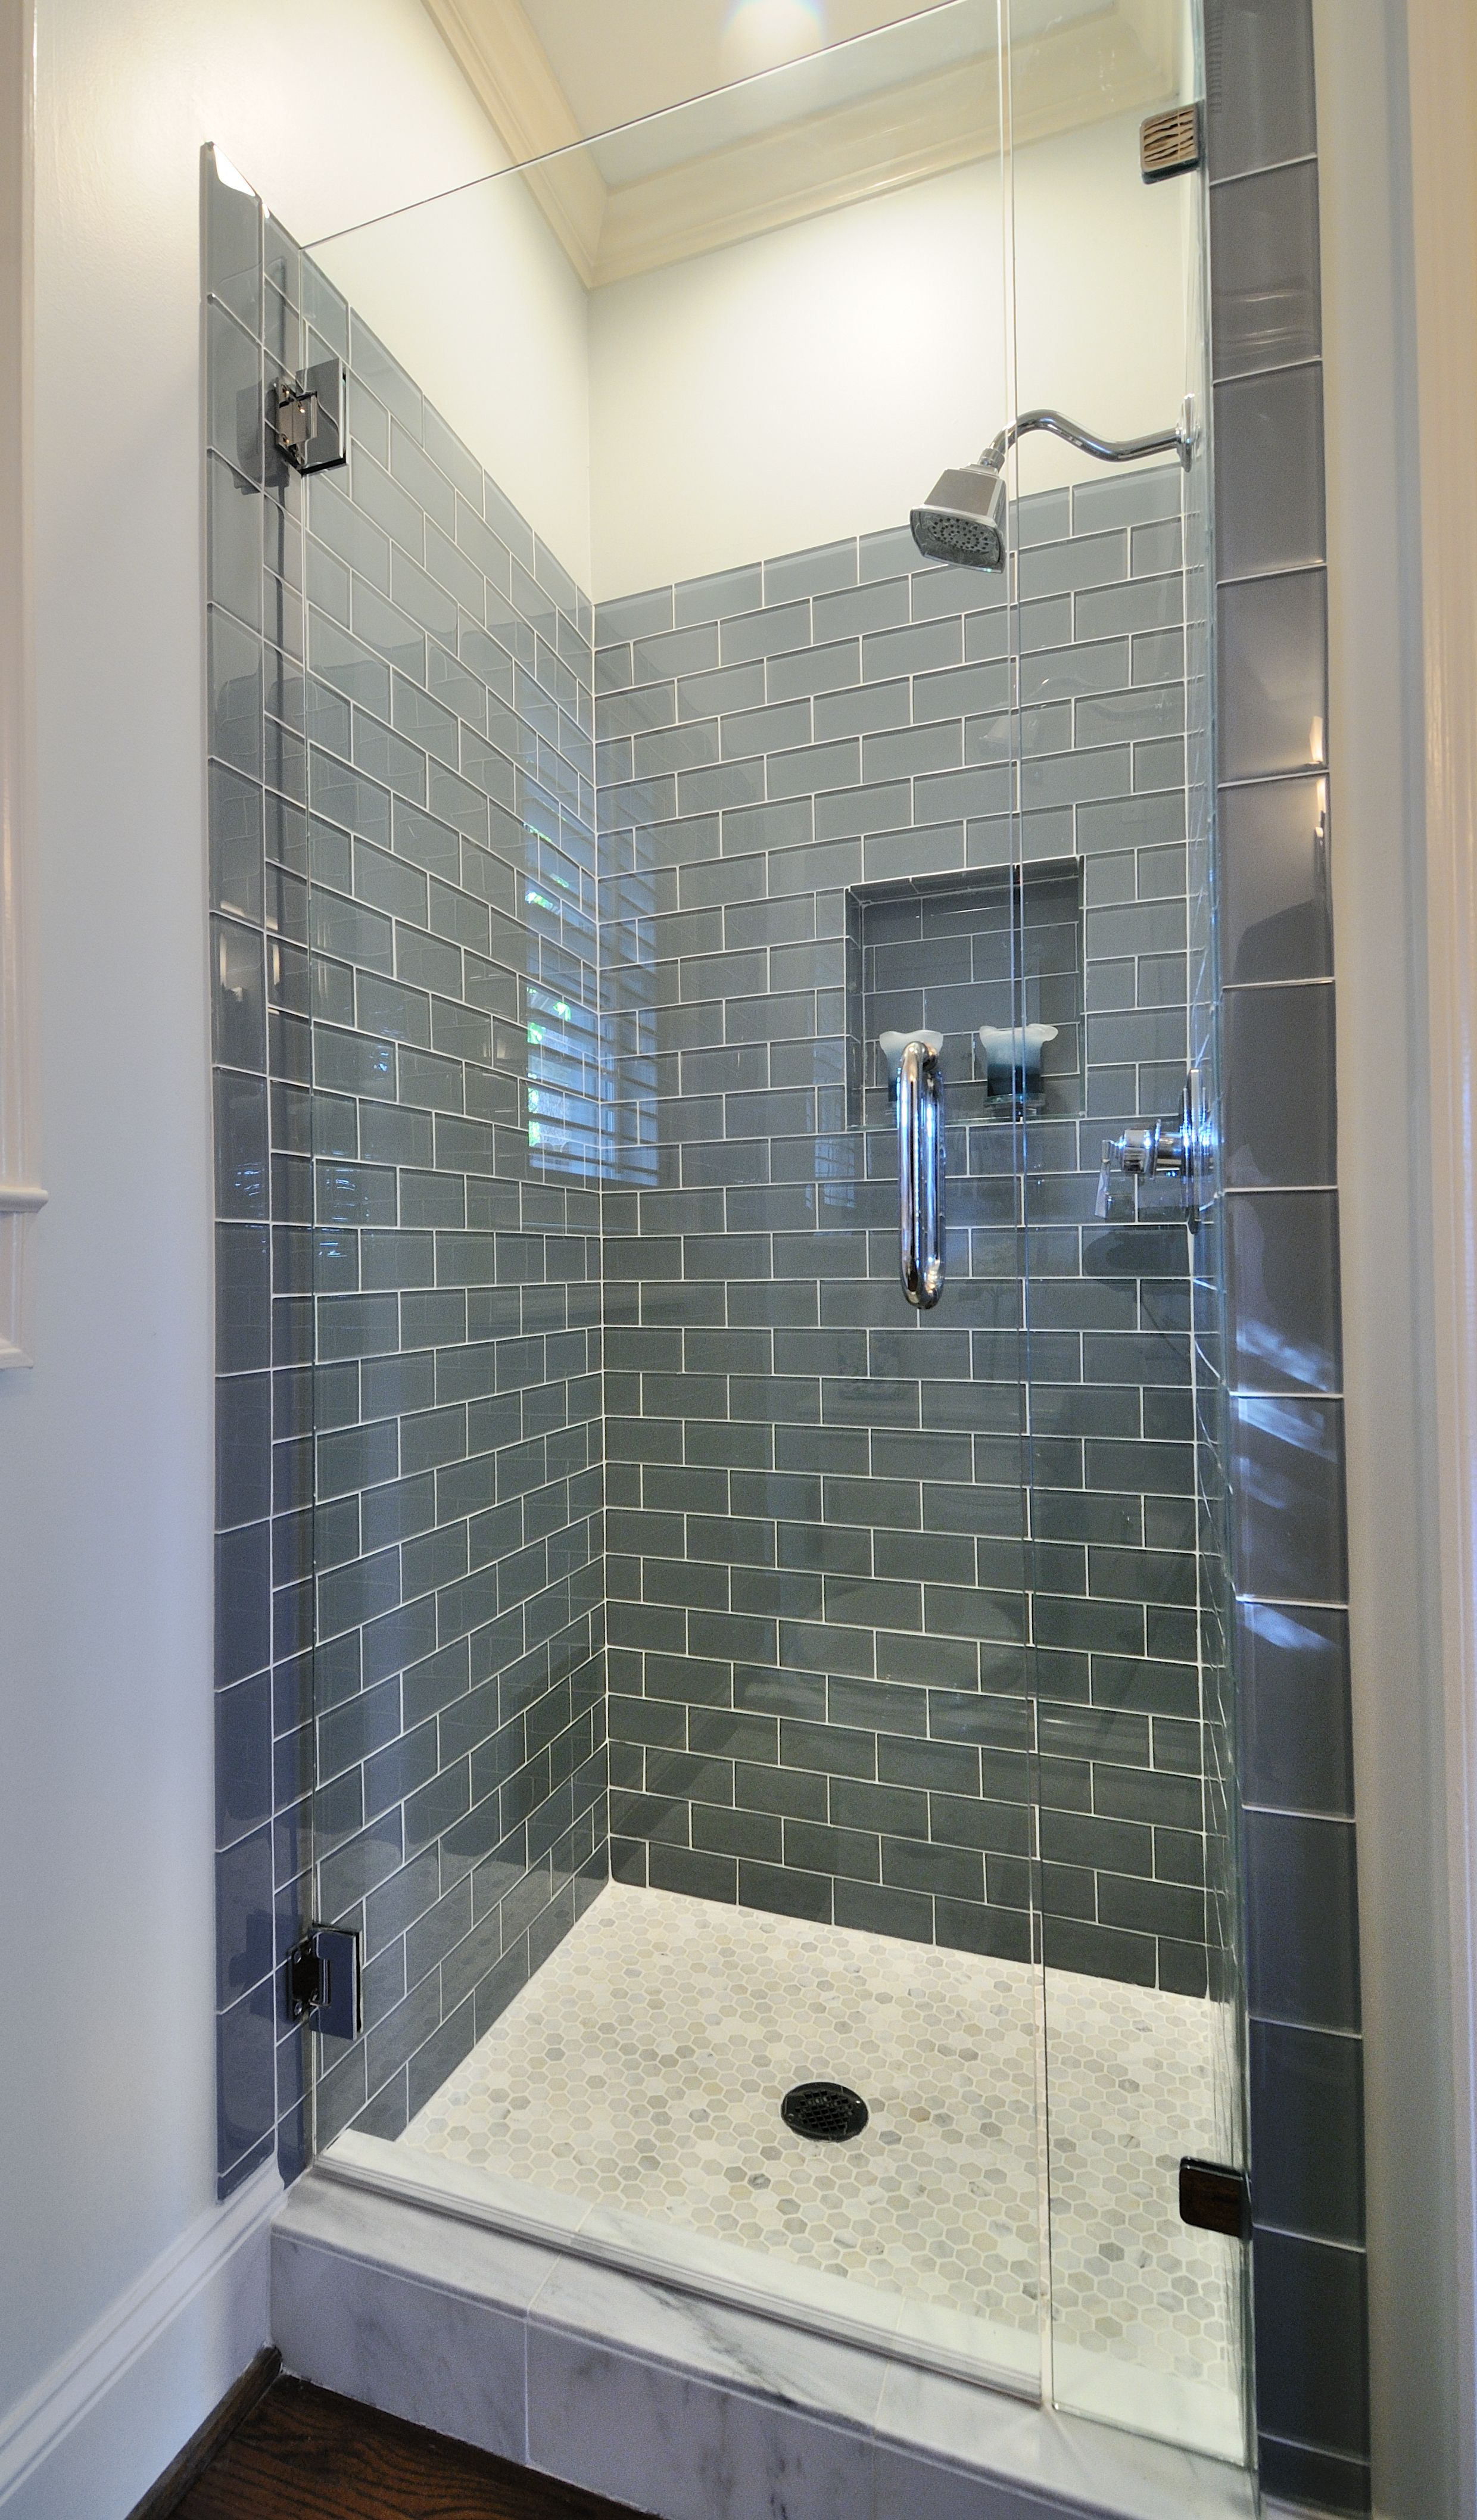 Ice Gray Glass Subway Tile | Tile and flooring | Pinterest ...